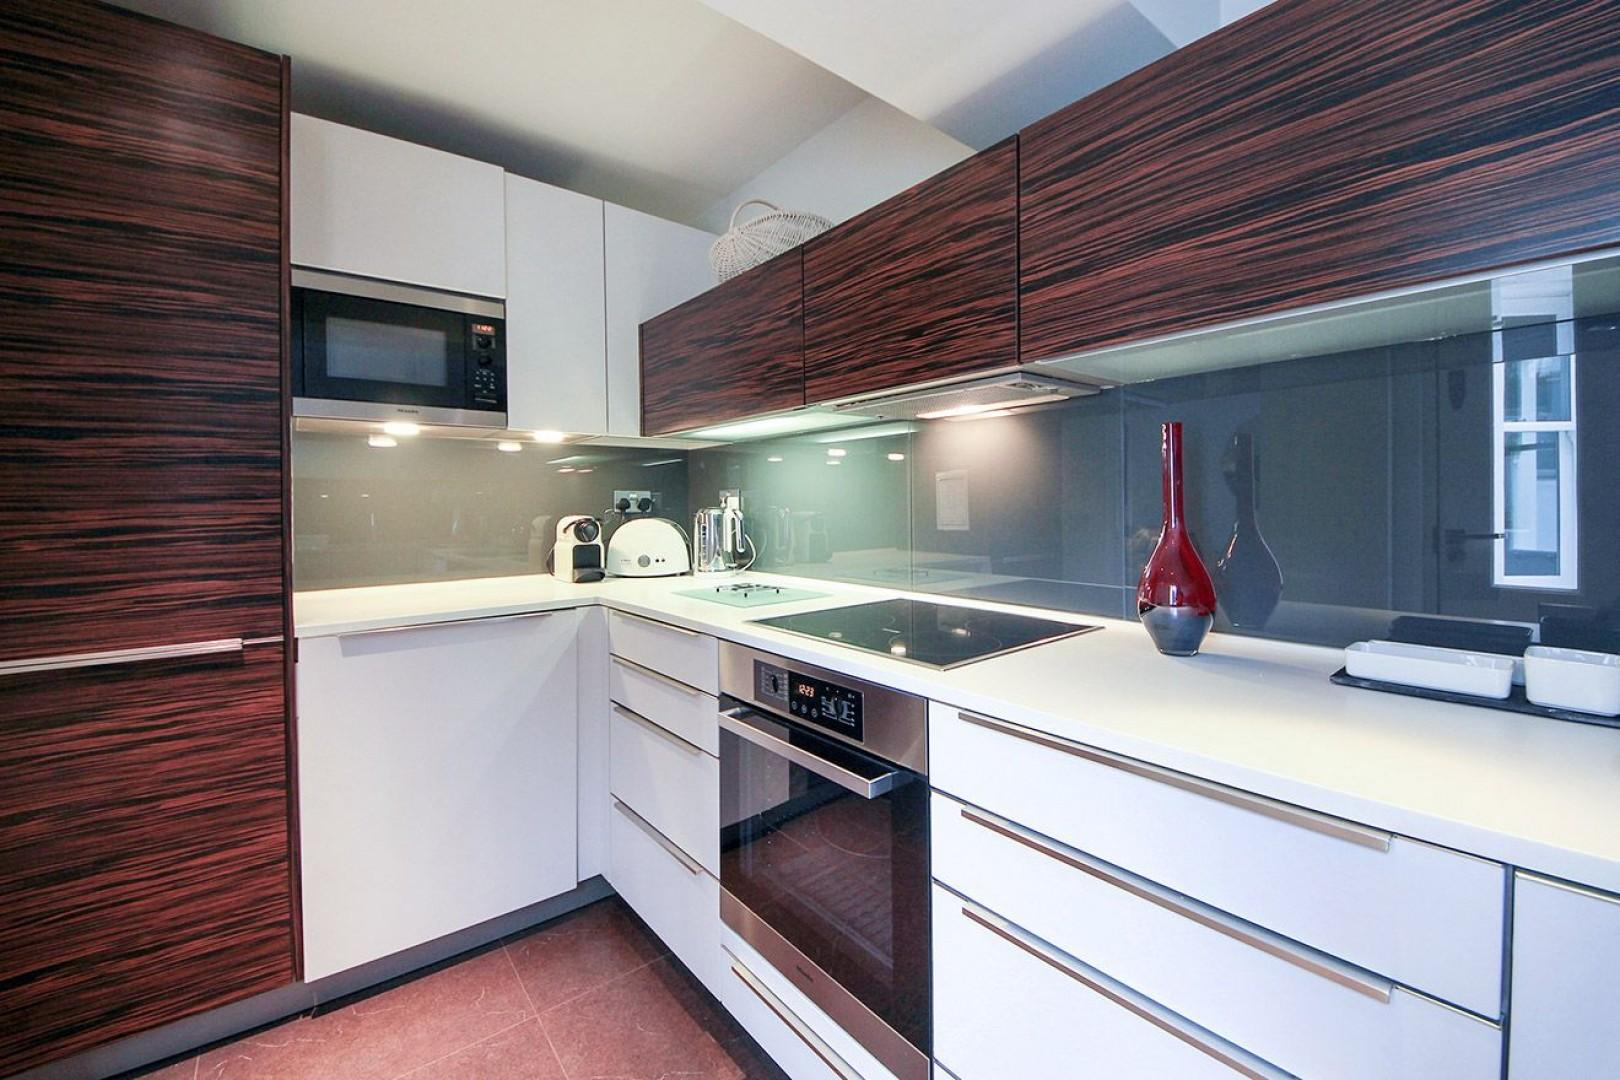 Beautifully designed modern kitchen with teak cabinets